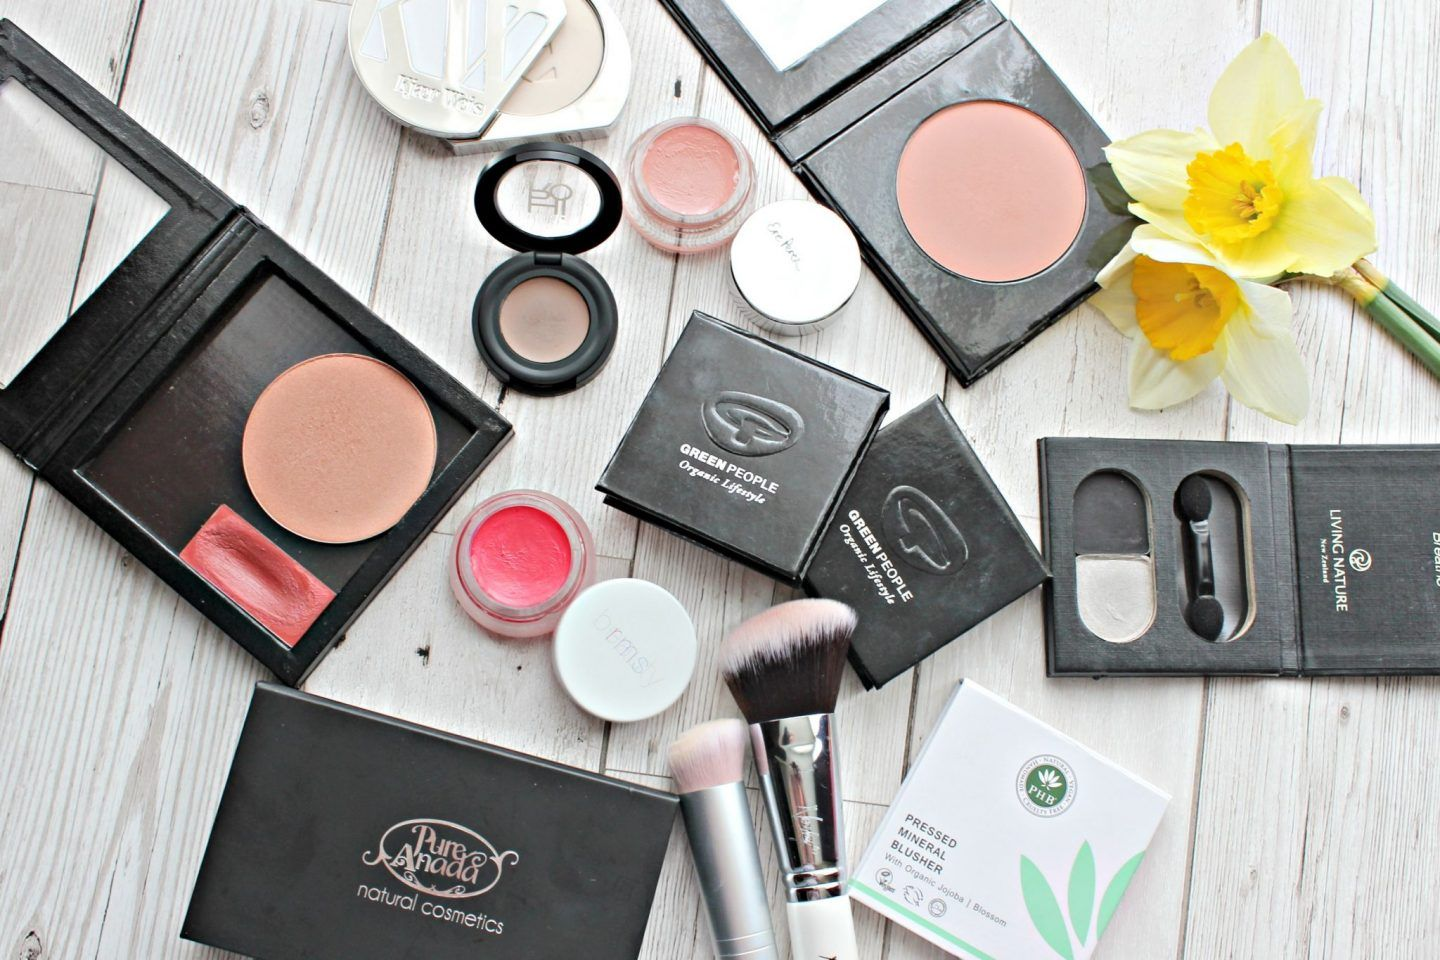 Zero waste makeup Natural brands who offer refillable